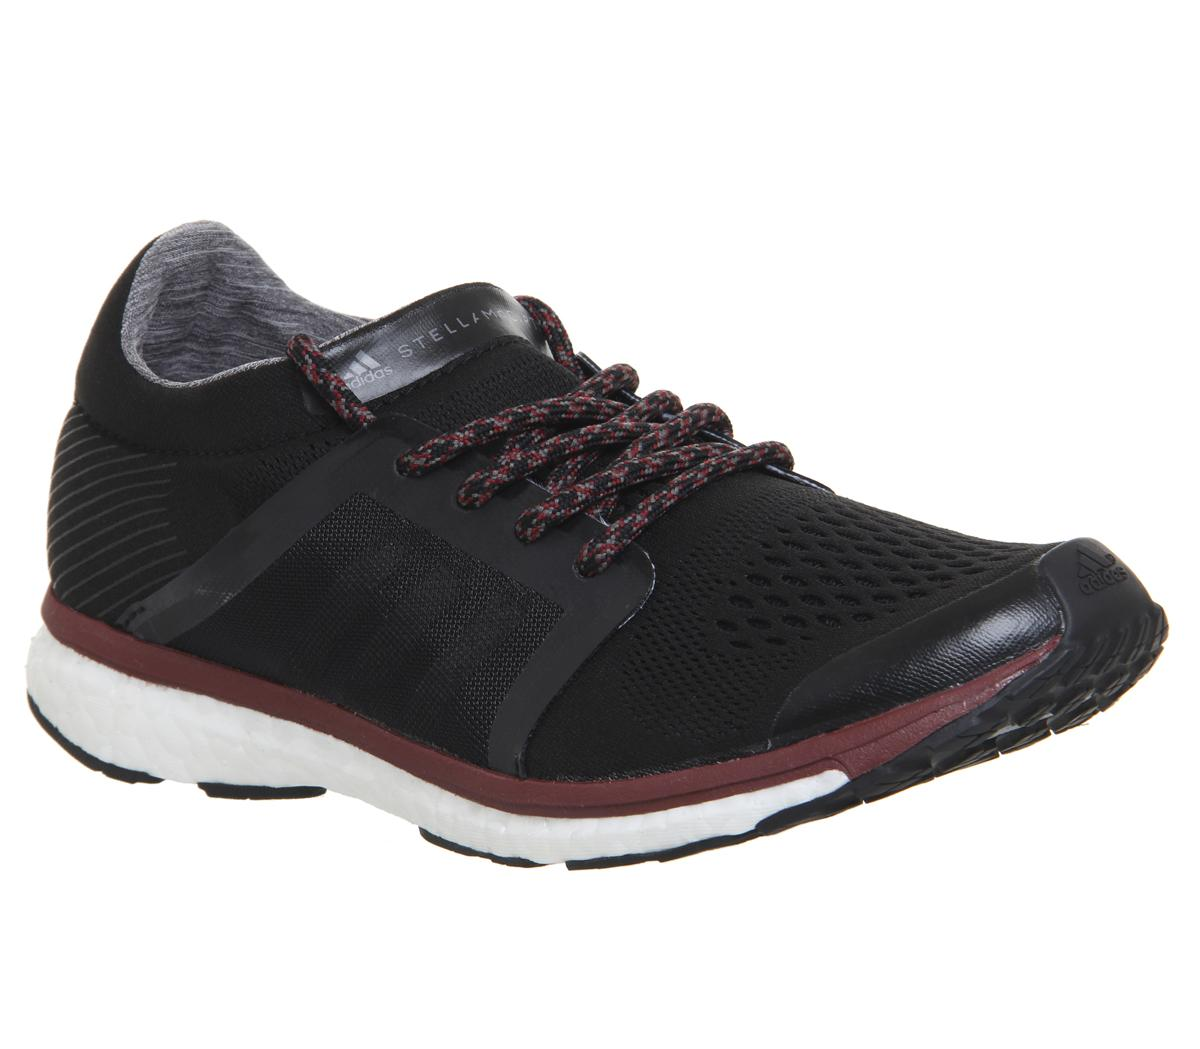 clearance prices run shoes pretty cool Adizero Adios Trainers